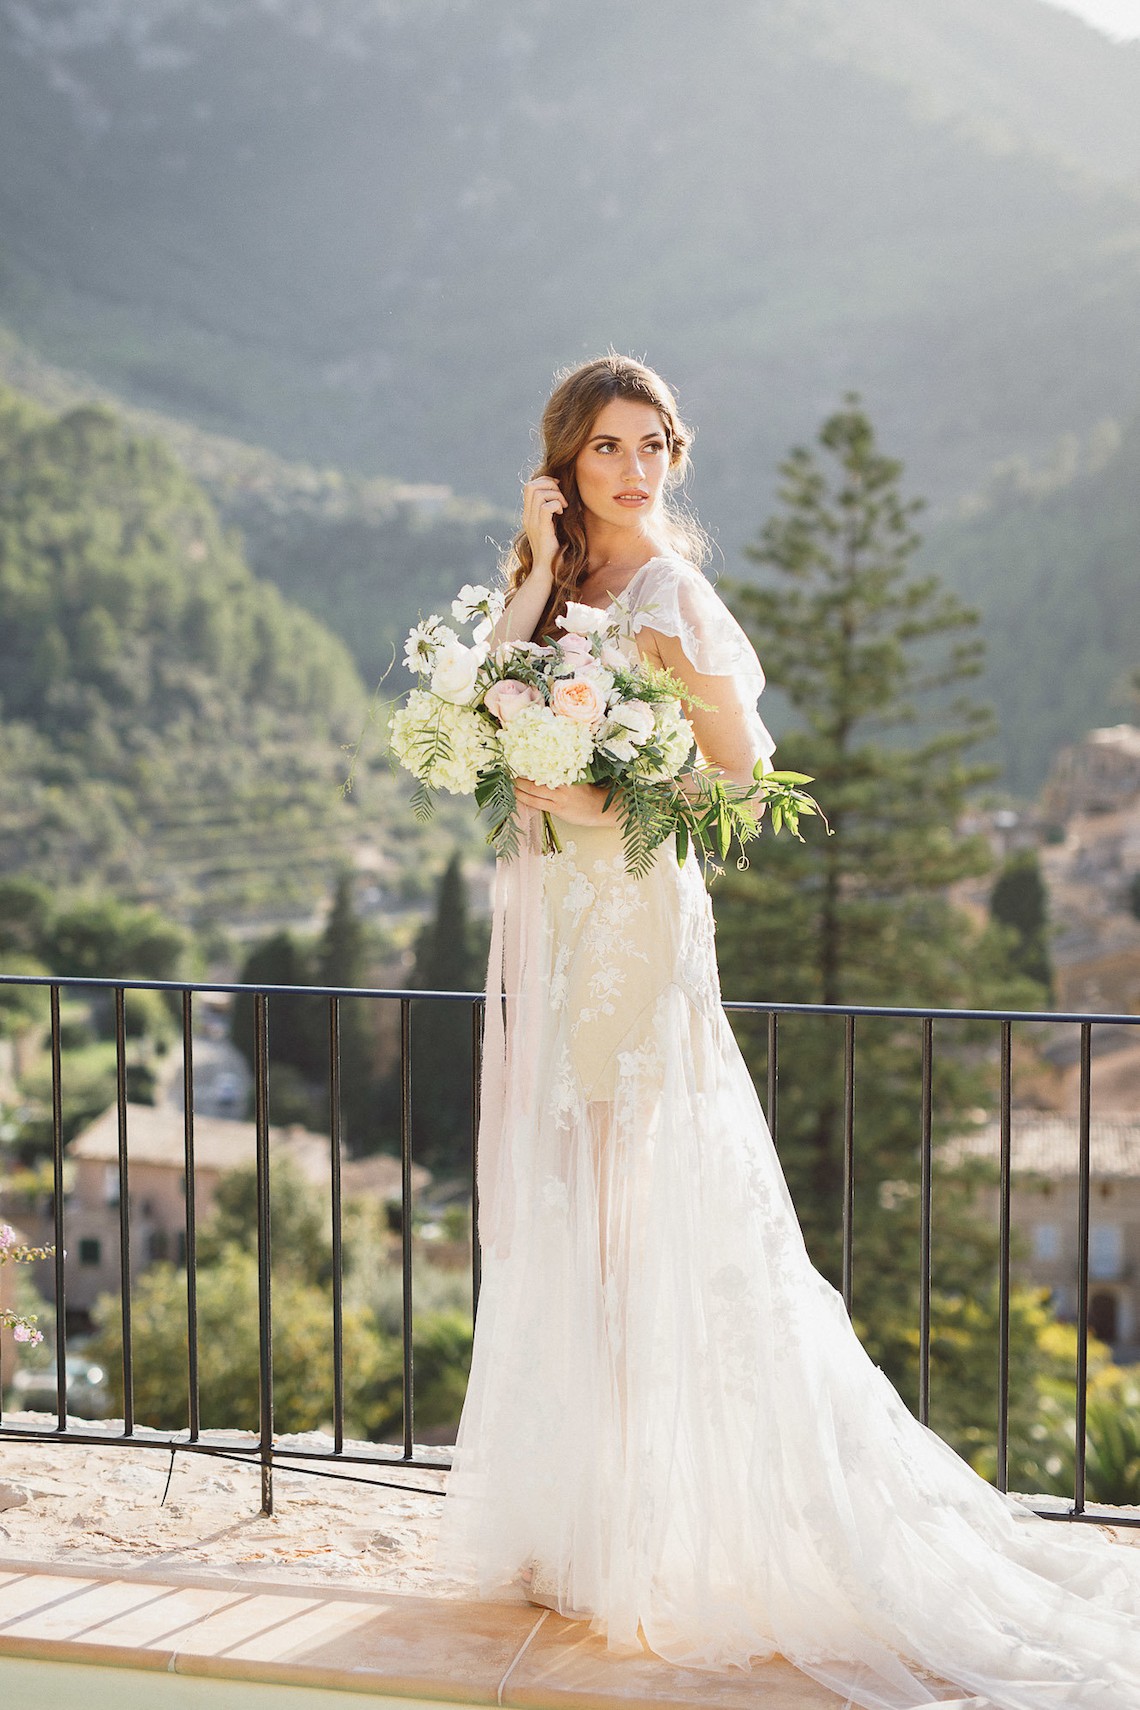 The Dreamiest Mallorca Mountain Bridal Inspiration – Vivid Symphony 32